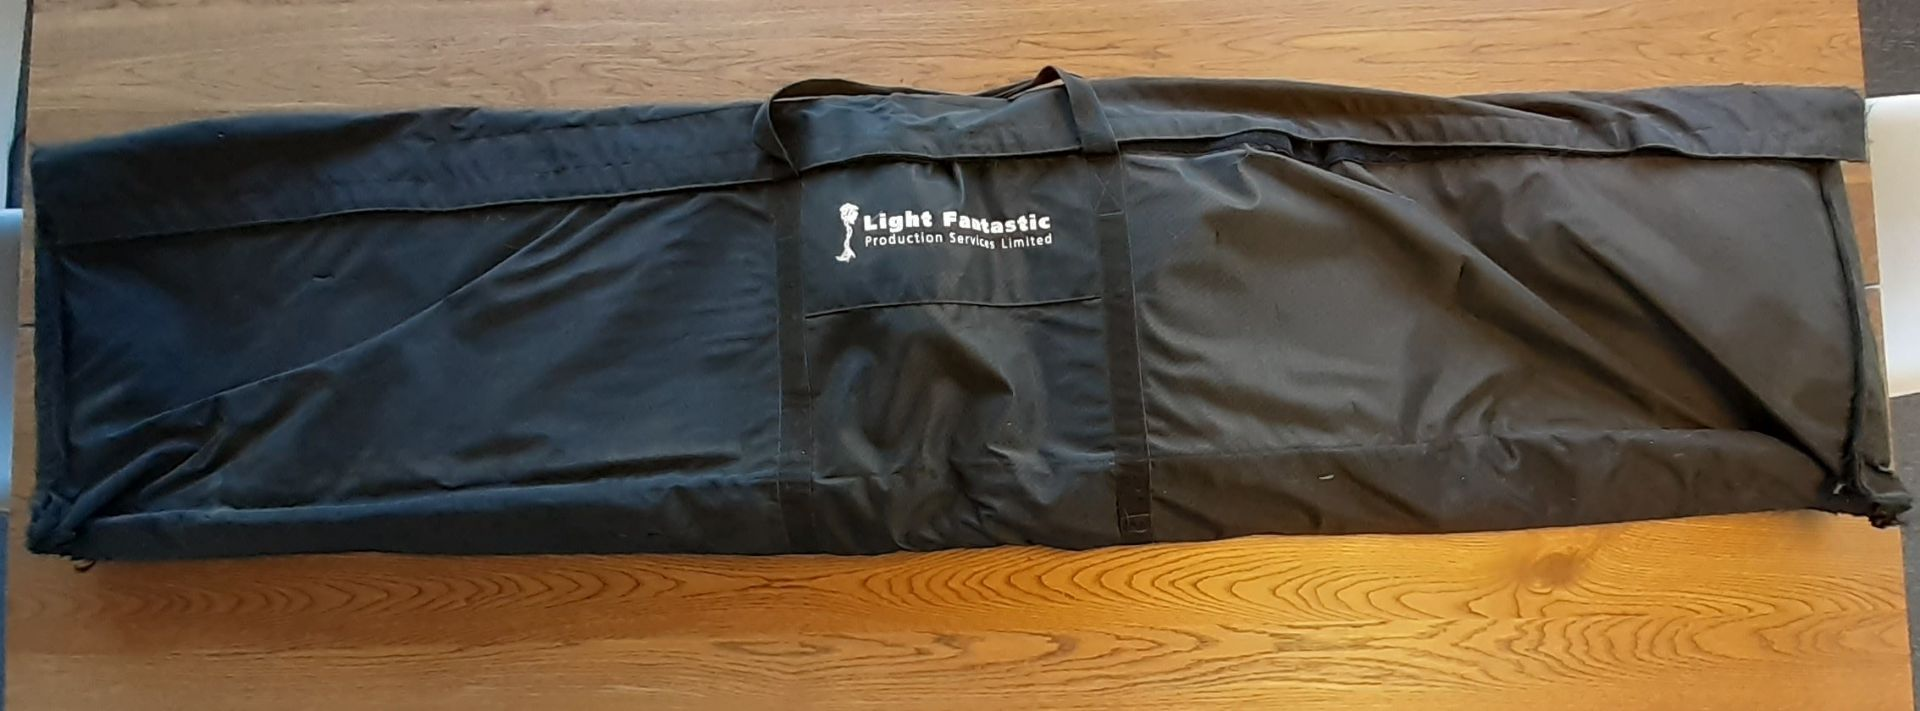 2 x Padded Unicol Parabella Stand Leg Bags, branded 'Light Fantastic Production Services' (used)(